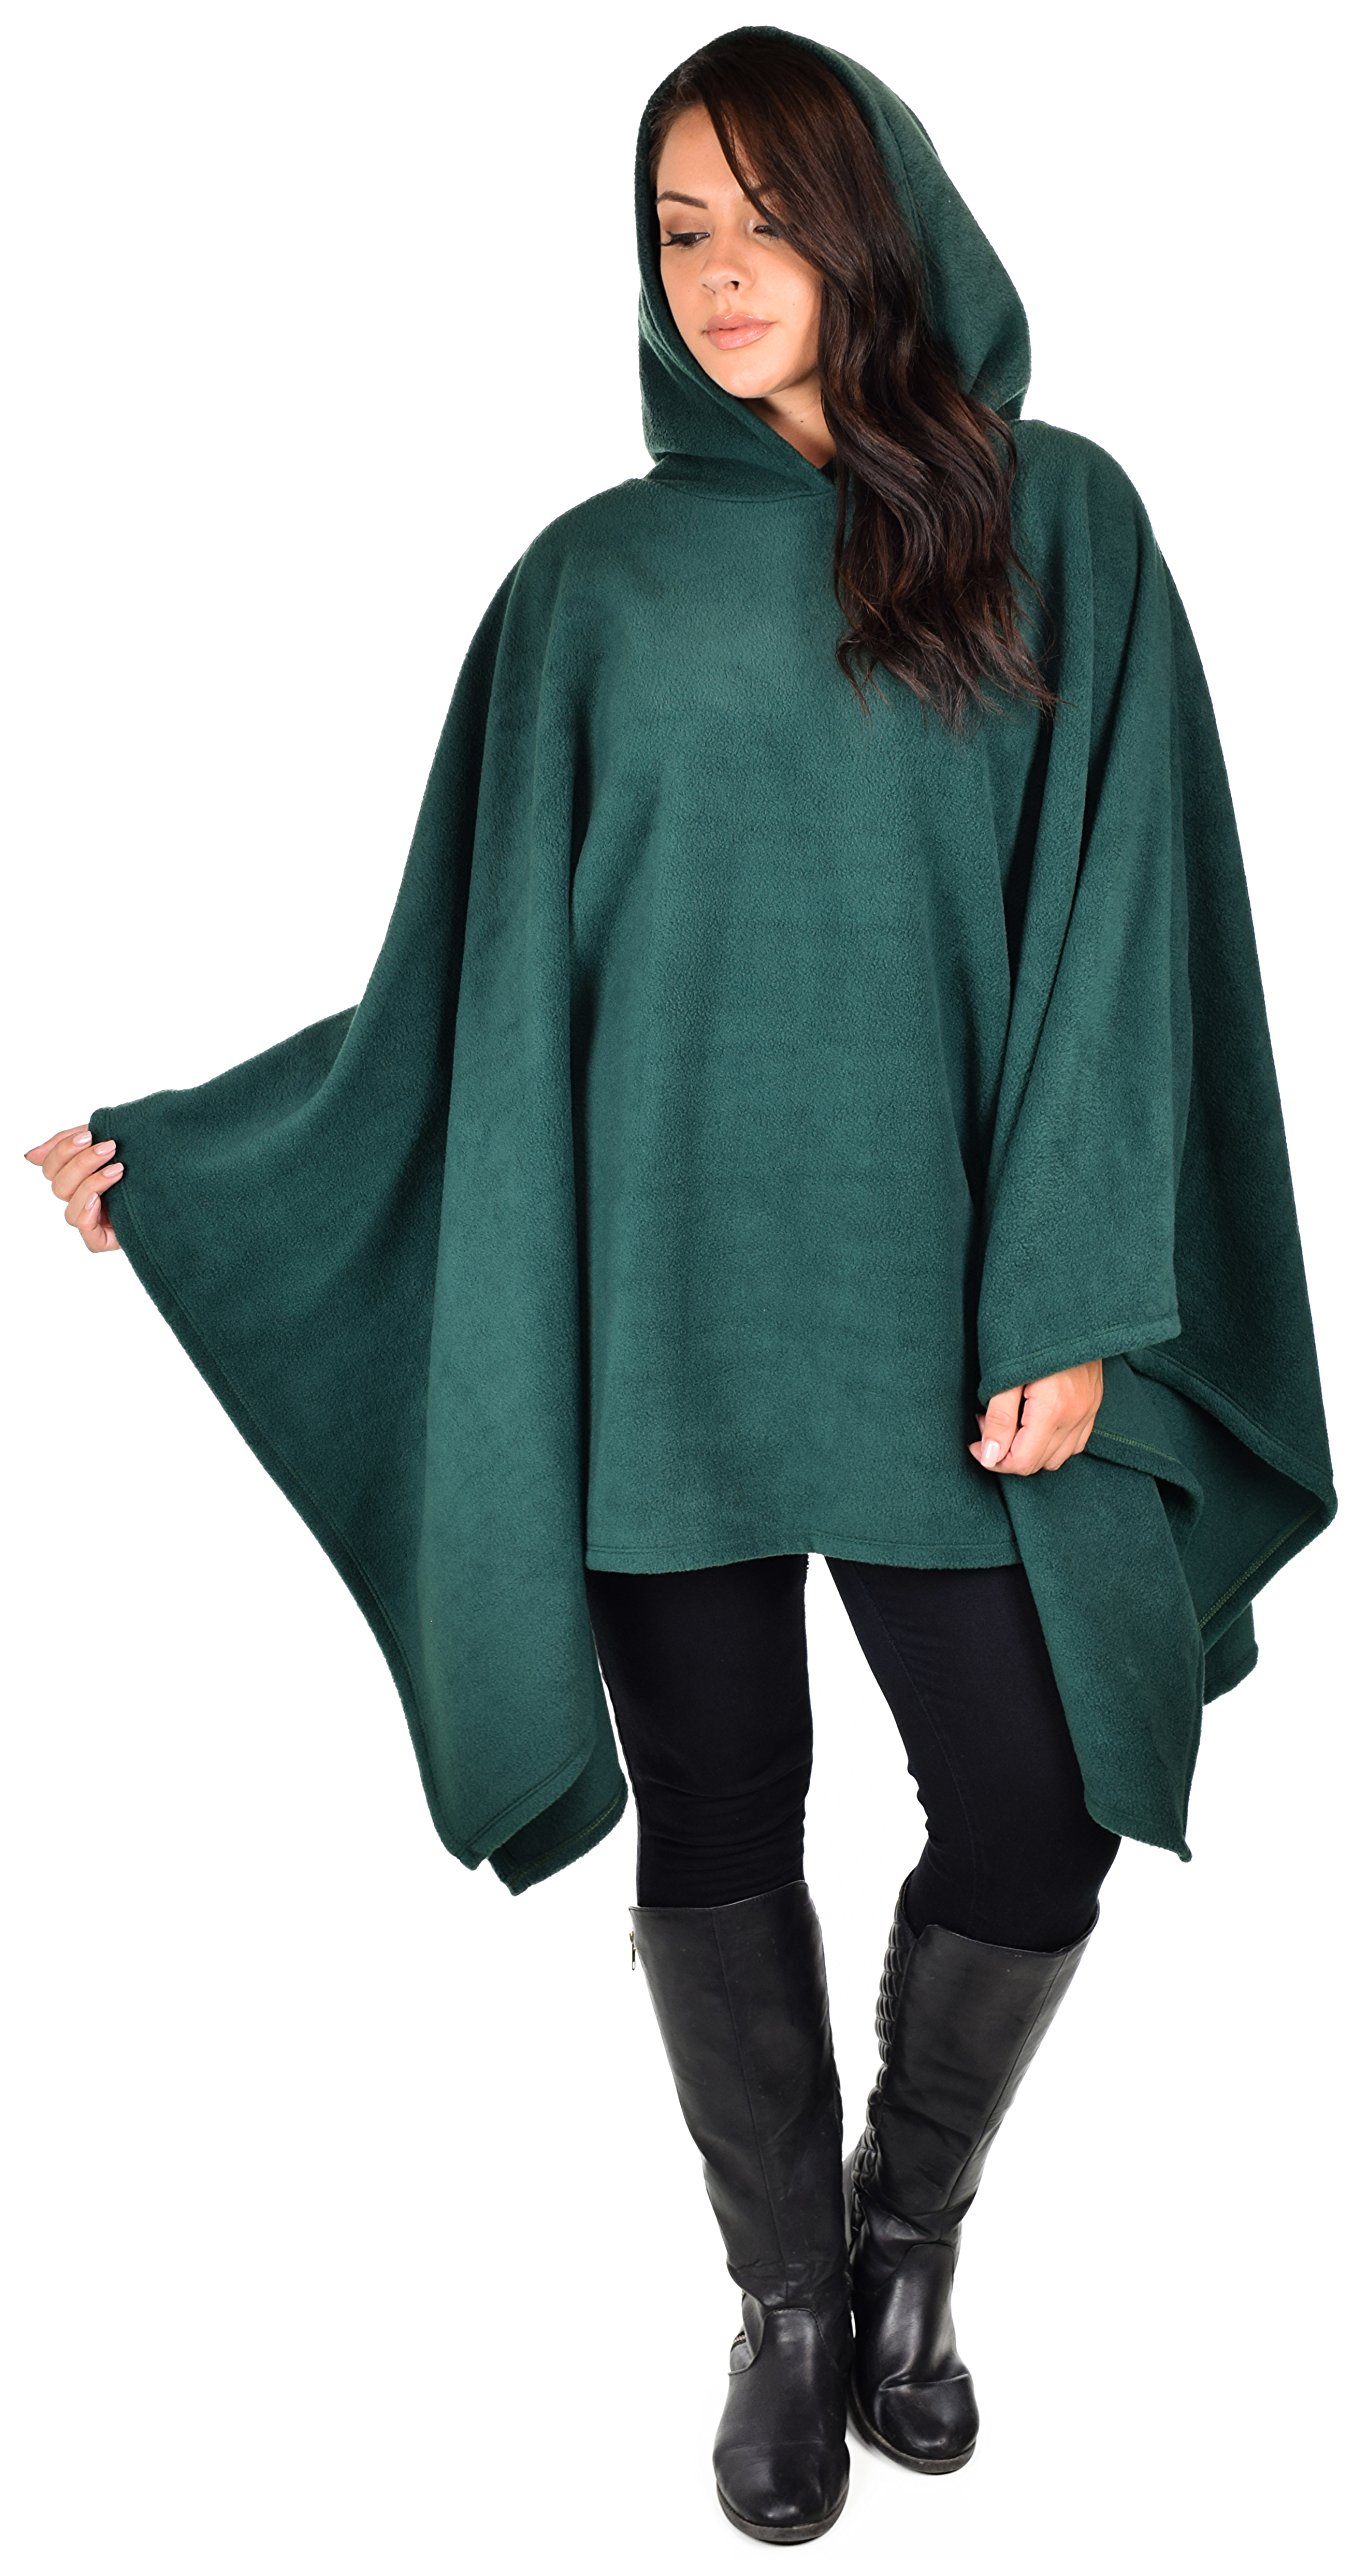 Dare2bStylish Women Poncho Style Hoodie Sweater Fleece Cover Up for Cold Weather